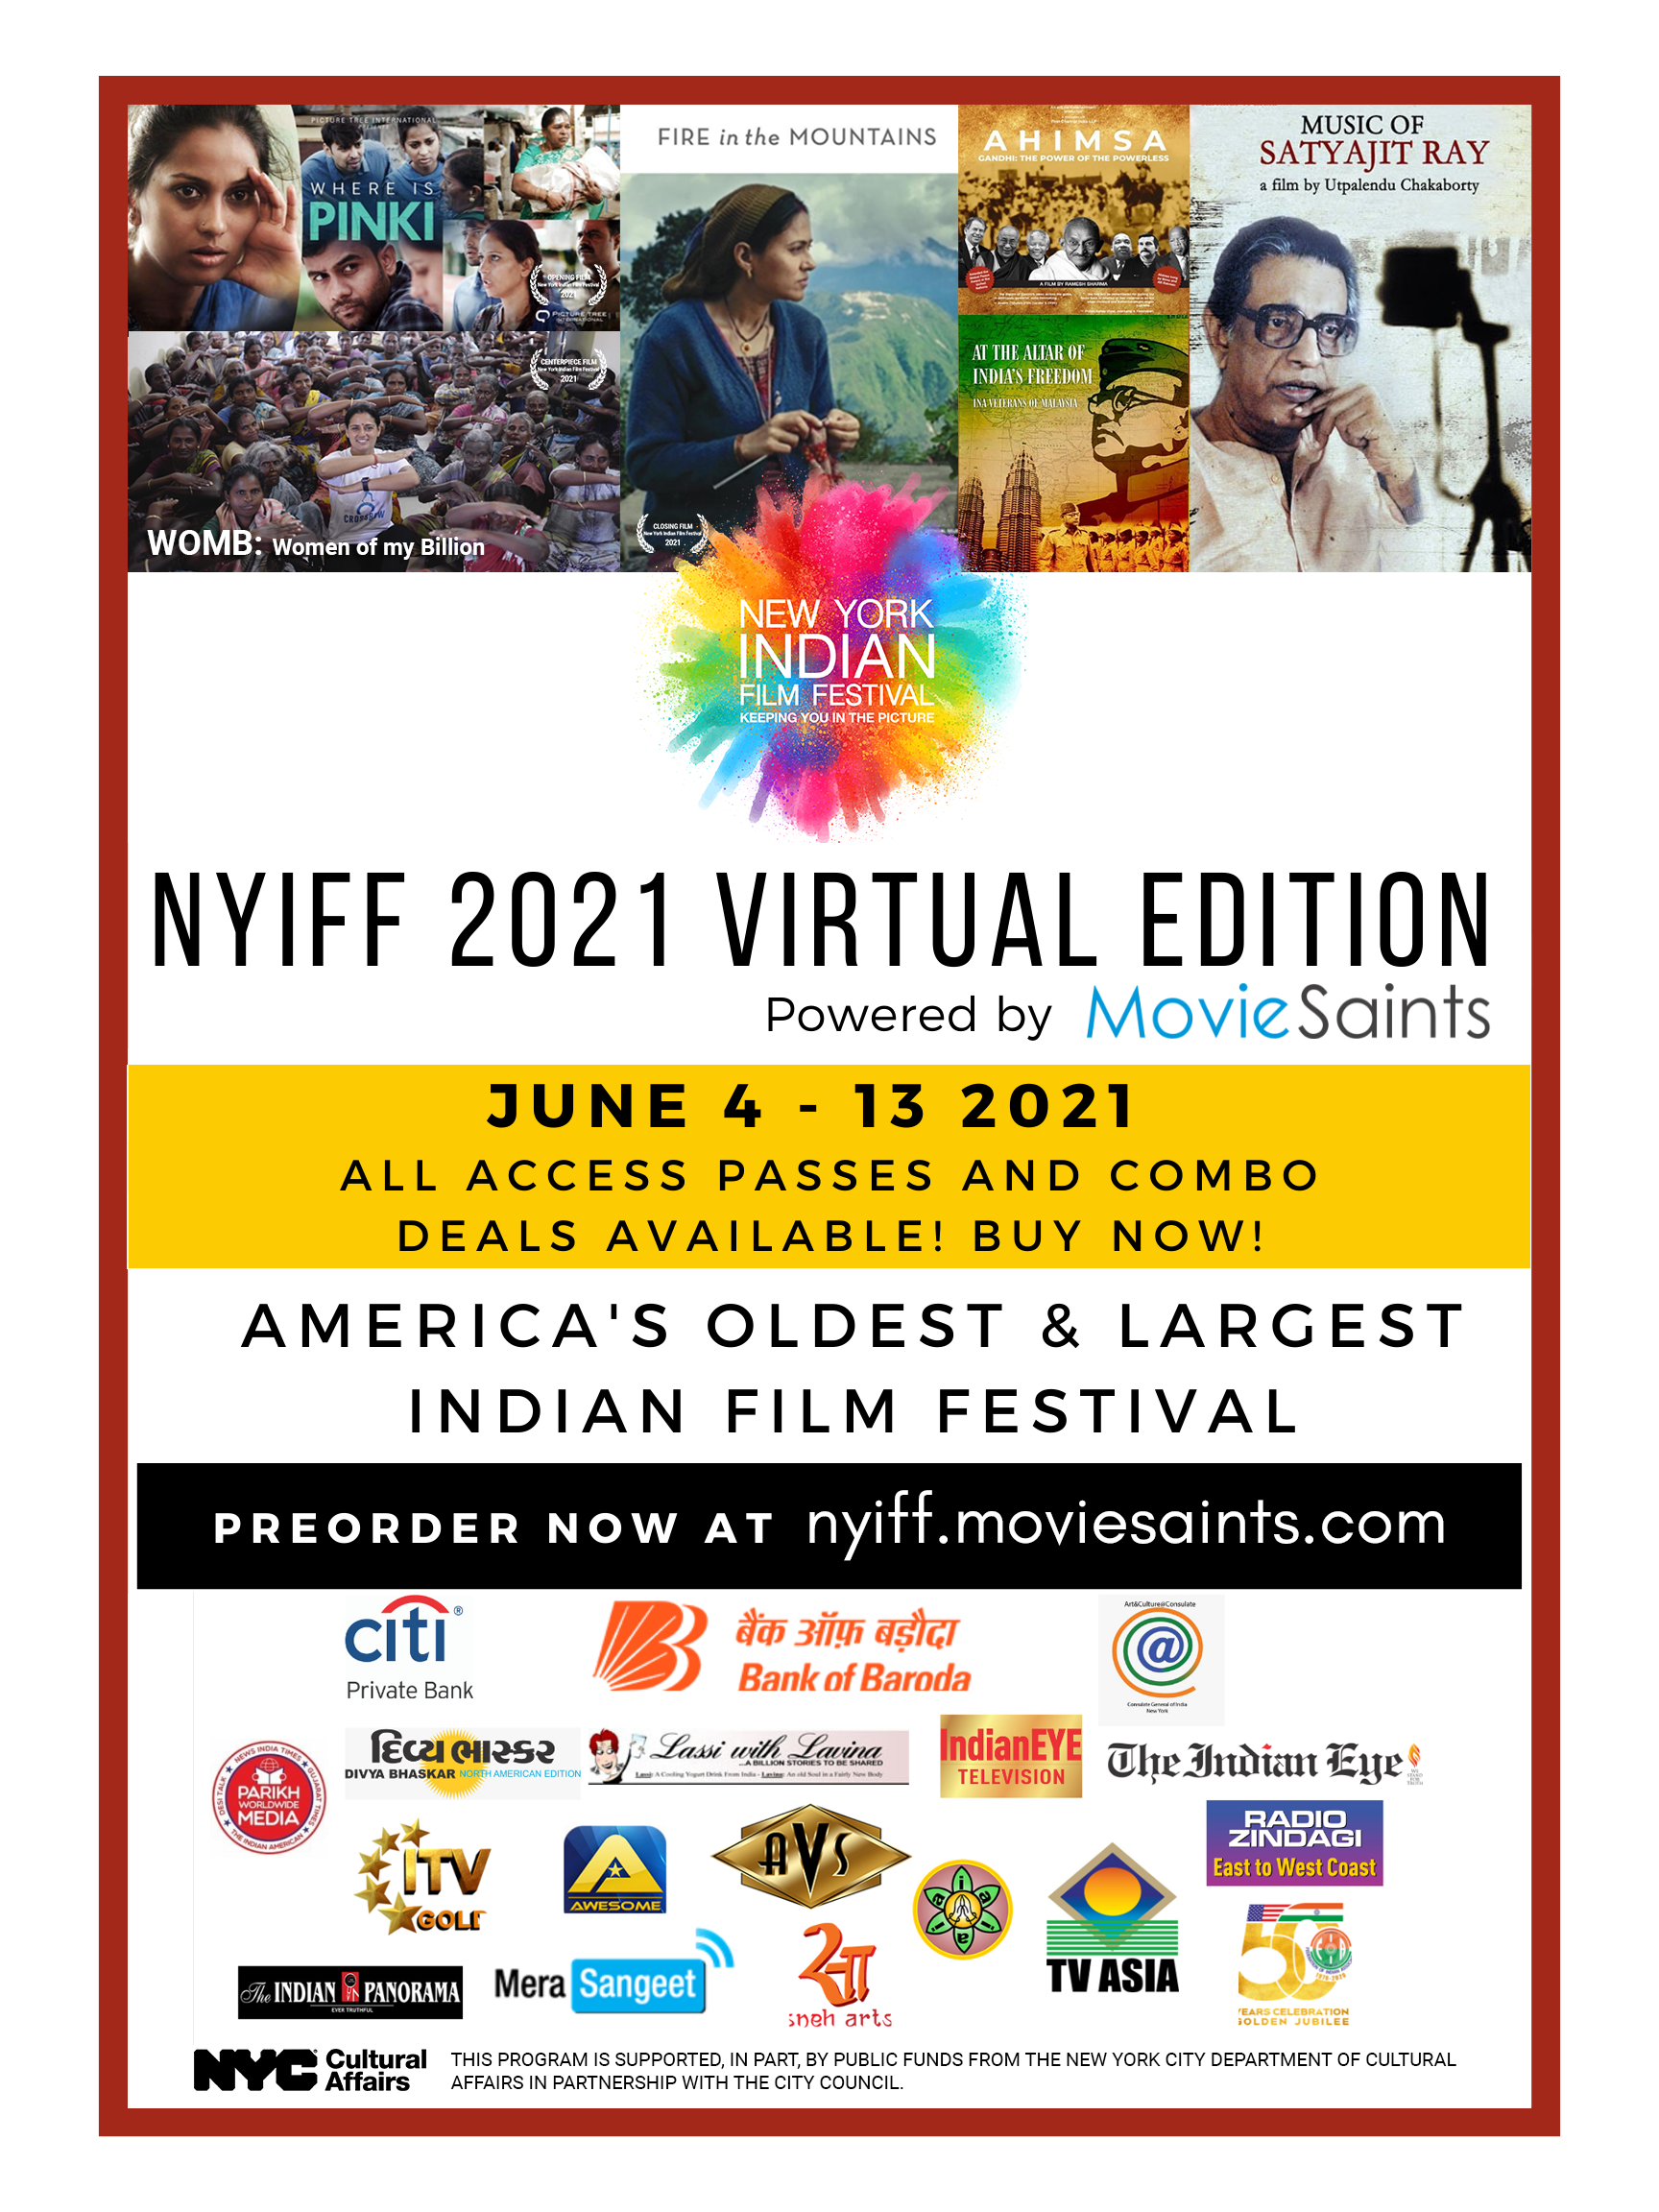 The New York Indian Film Festival runs June 4-13 2021. With over 58 films - narrative features, docs and shorts - in 15 languages with English subtitles, it is the biggest film festival showcasing Indian cinema. Tickets at nyiff.moviesaints.com